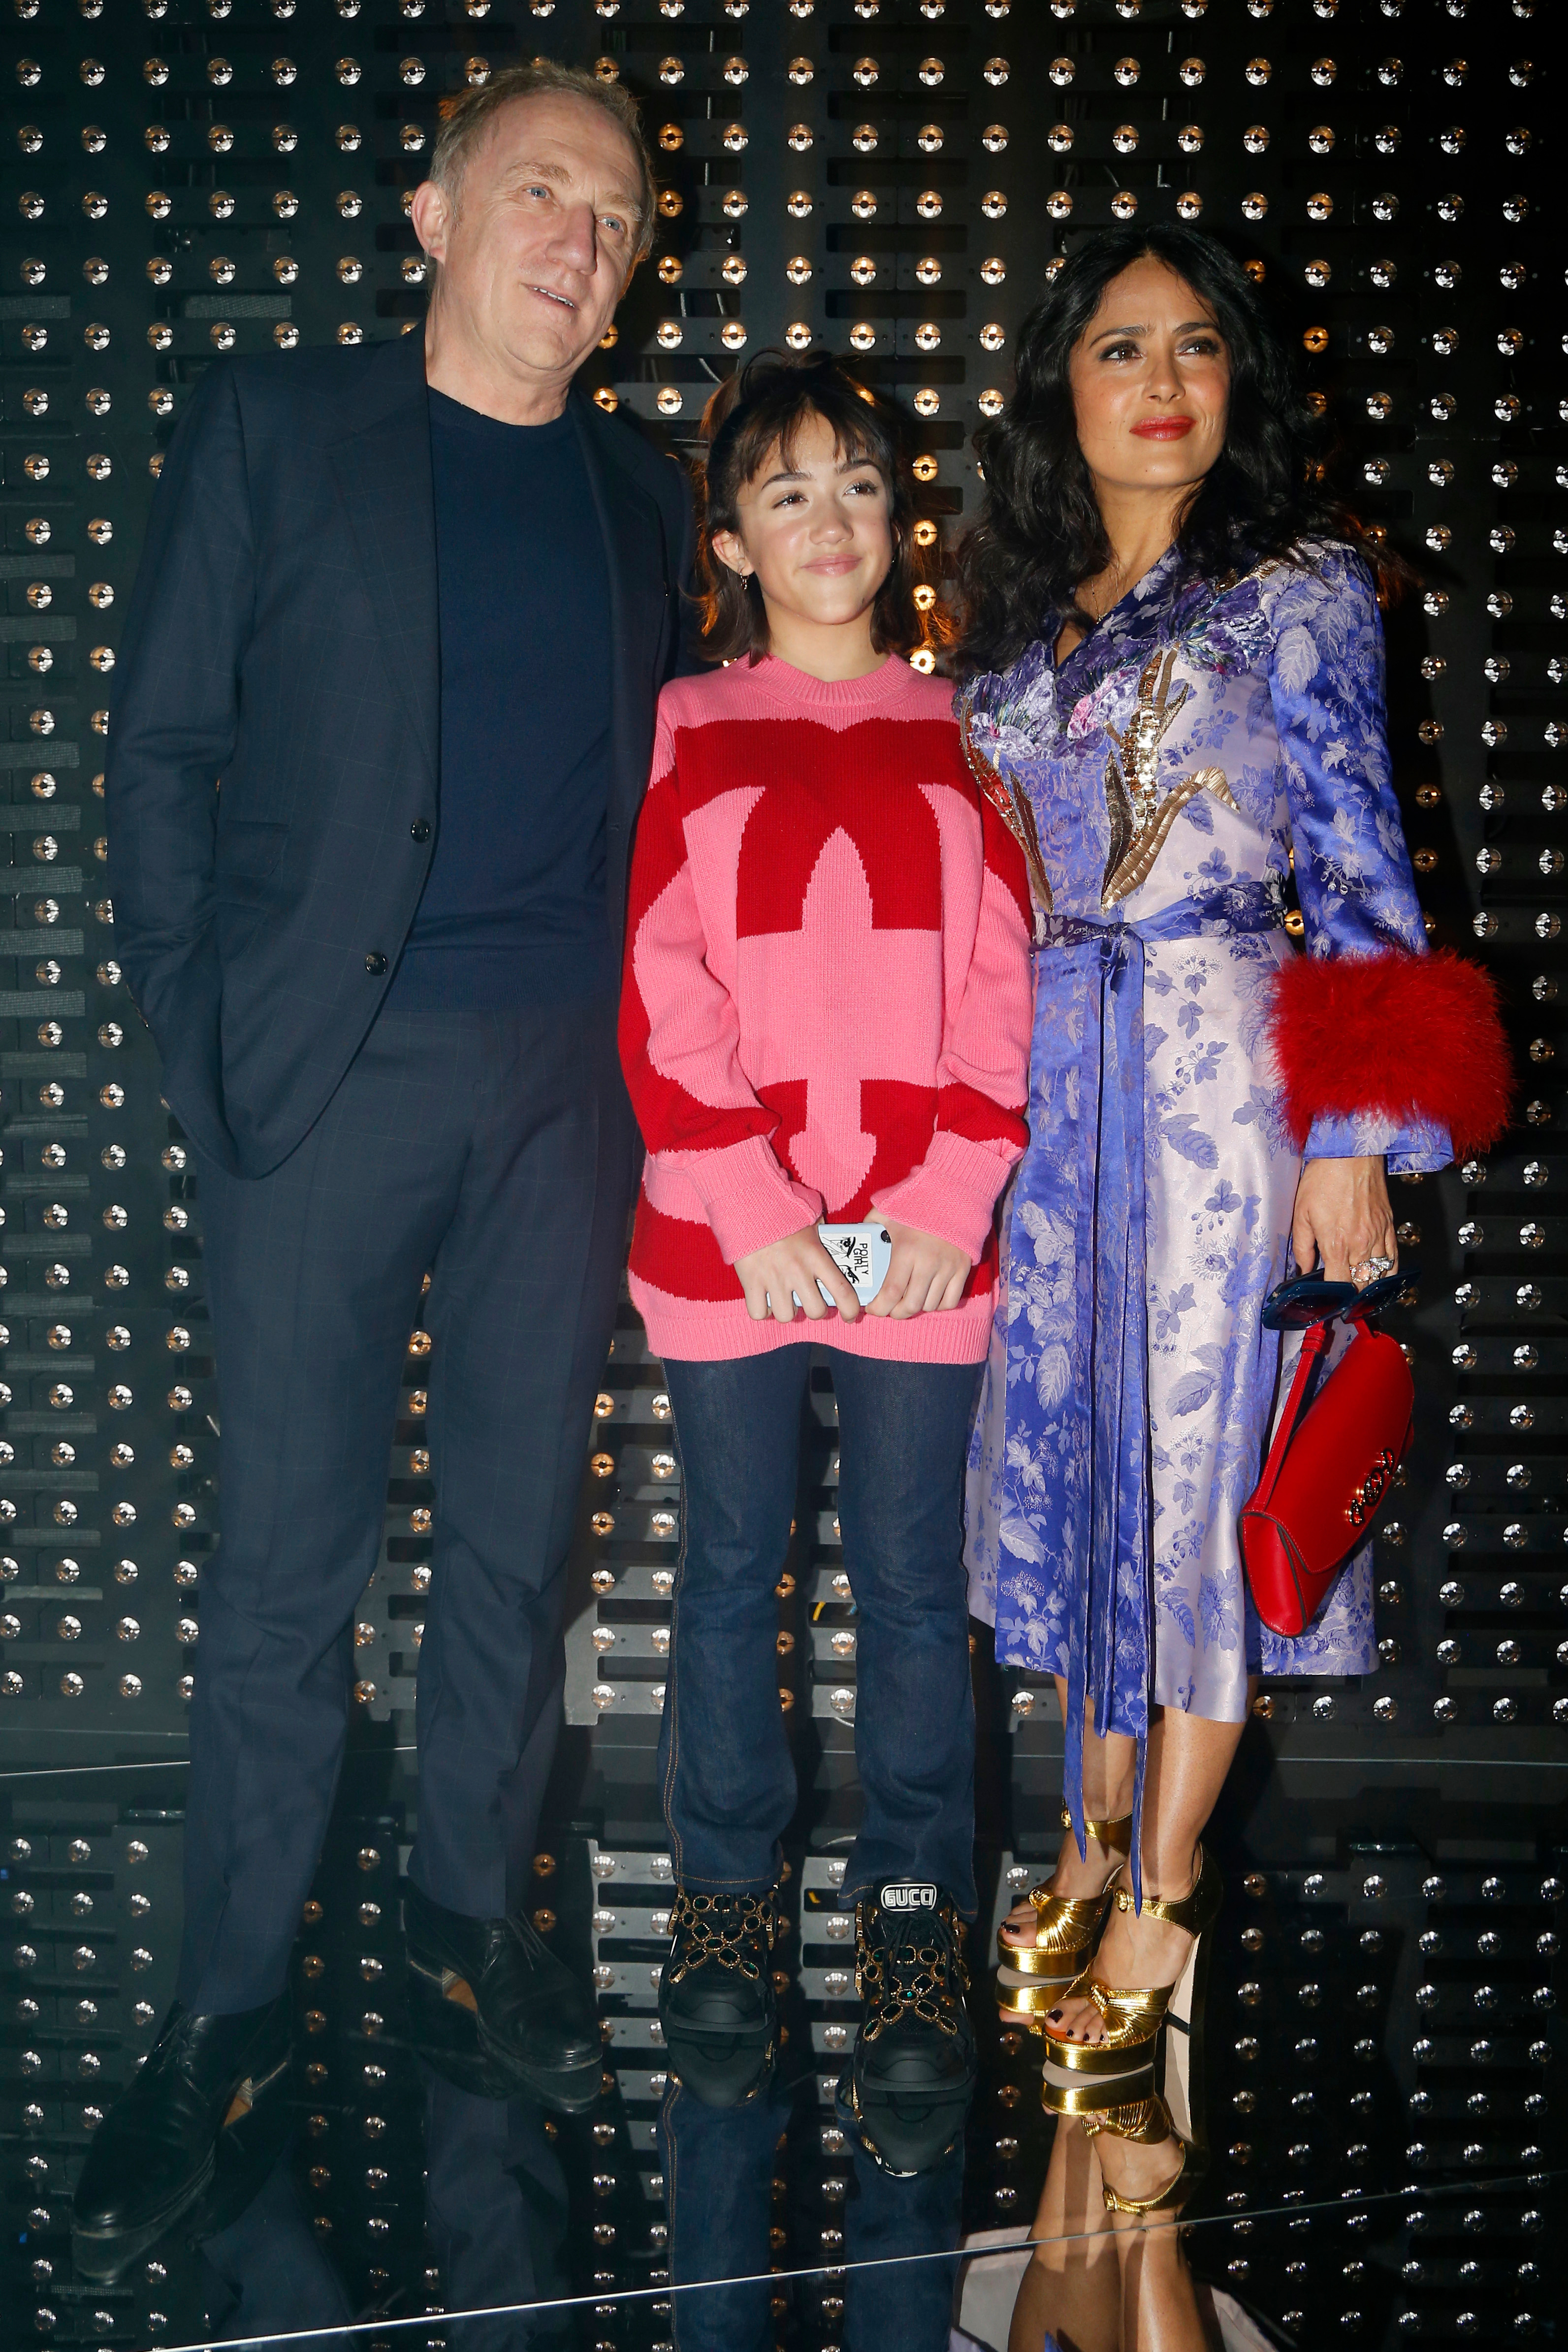 Francois Henri Pinault, Valentina Paloma Pinault and Salma Hayek appear in the front row of the Gucci show for Fall/Winter 2019 at Milan Fashion Week on Feb. 20, 2019.